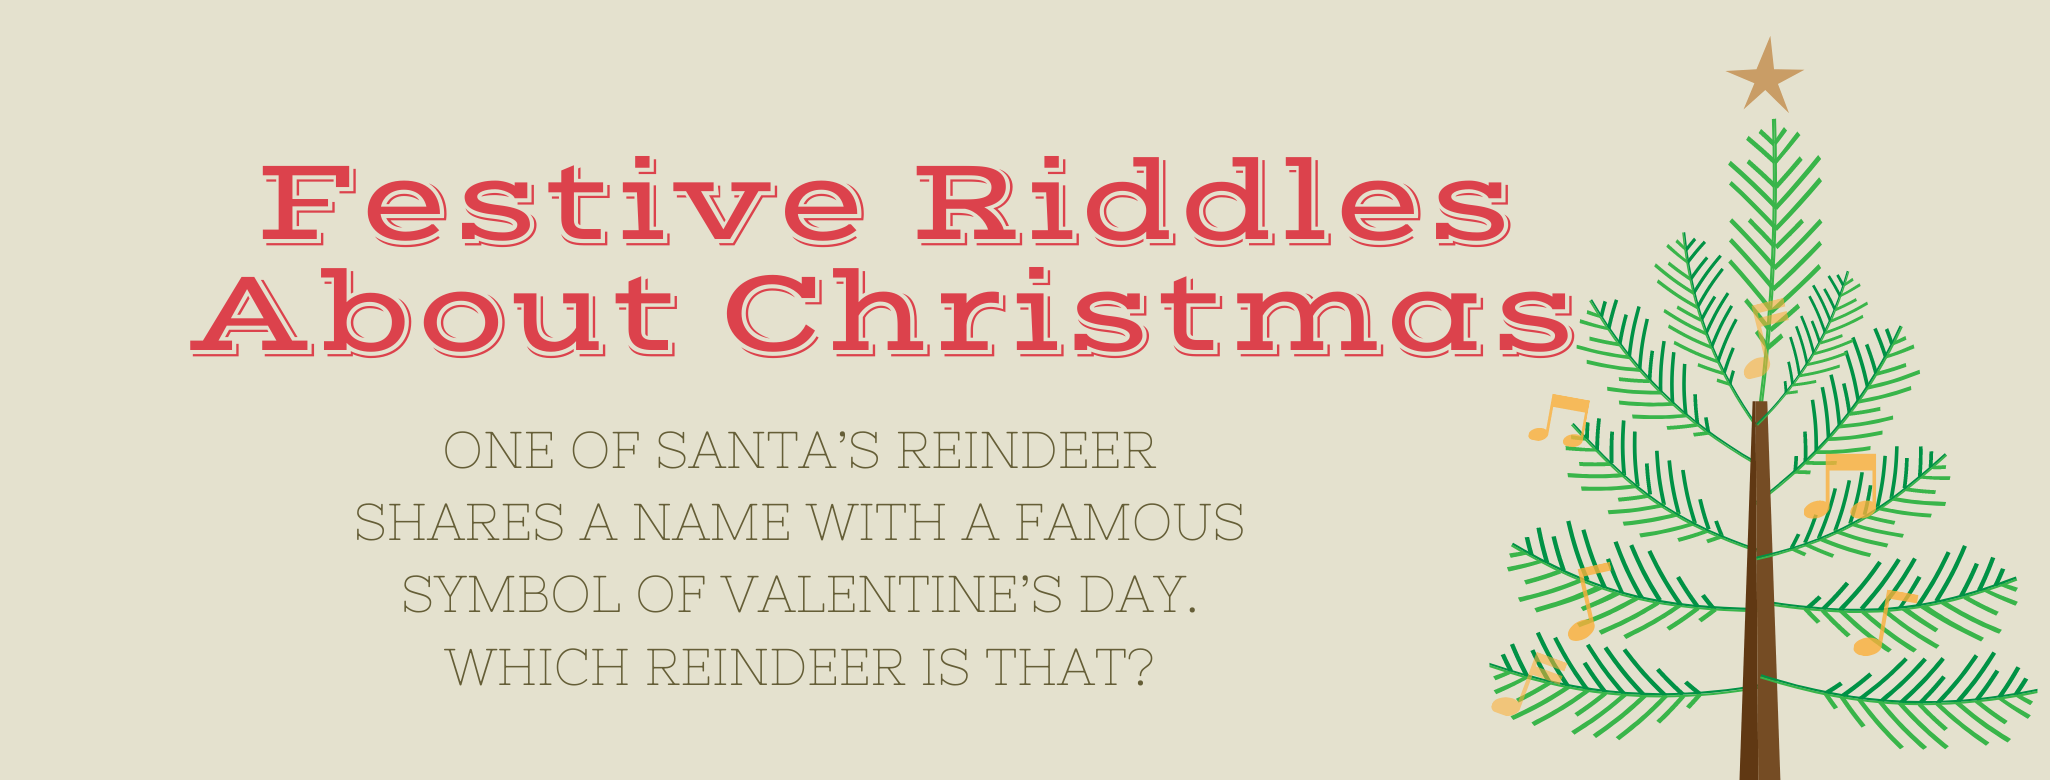 40+ Christmas Riddles for Kids: Fun Holiday Brain Workout